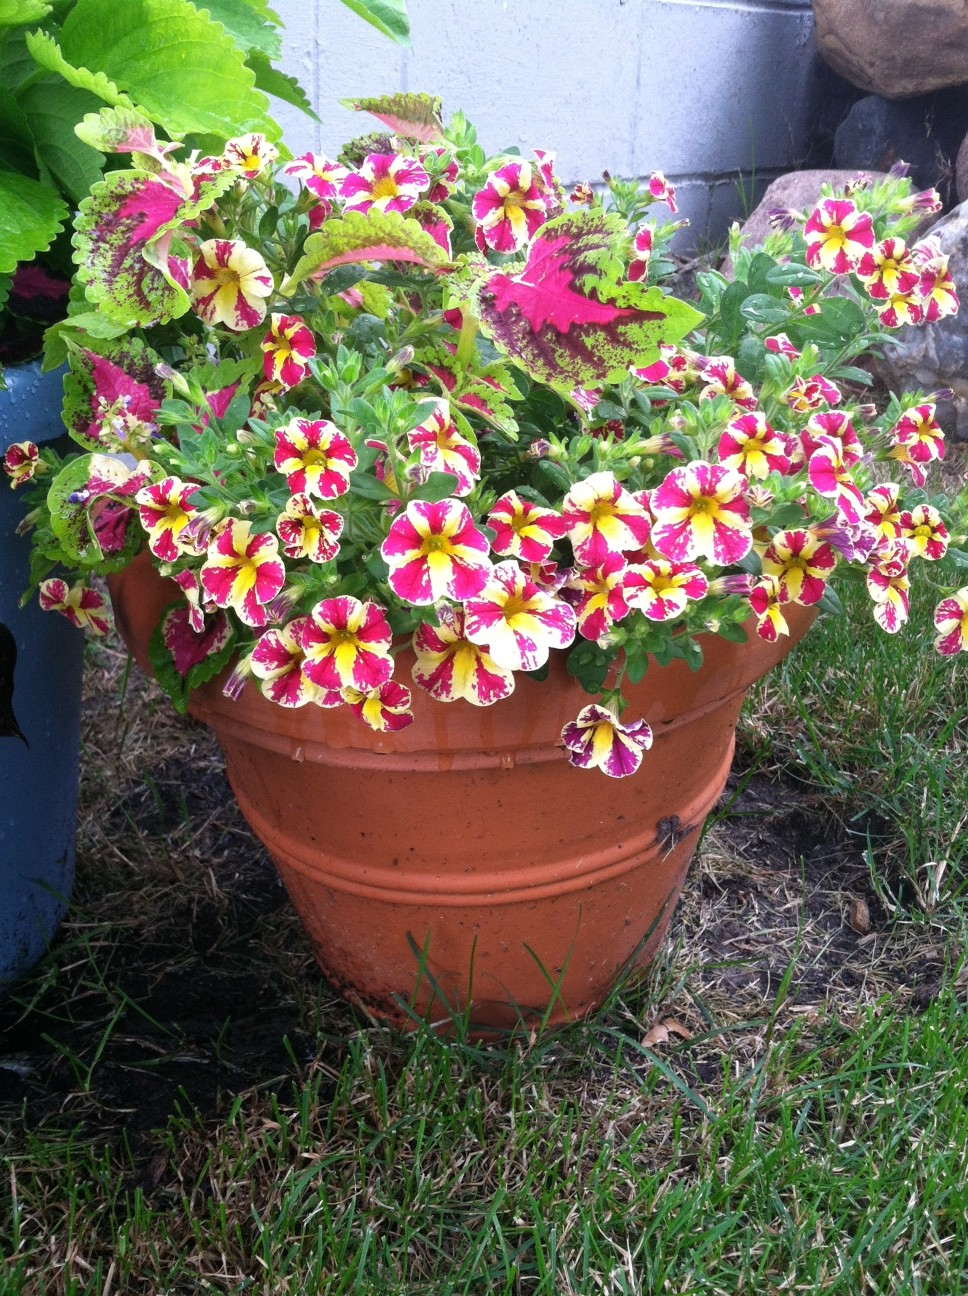 Annual flowers my northern garden holy moly calibrachoa blended nicely with pink and green coleus note to self izmirmasajfo Image collections